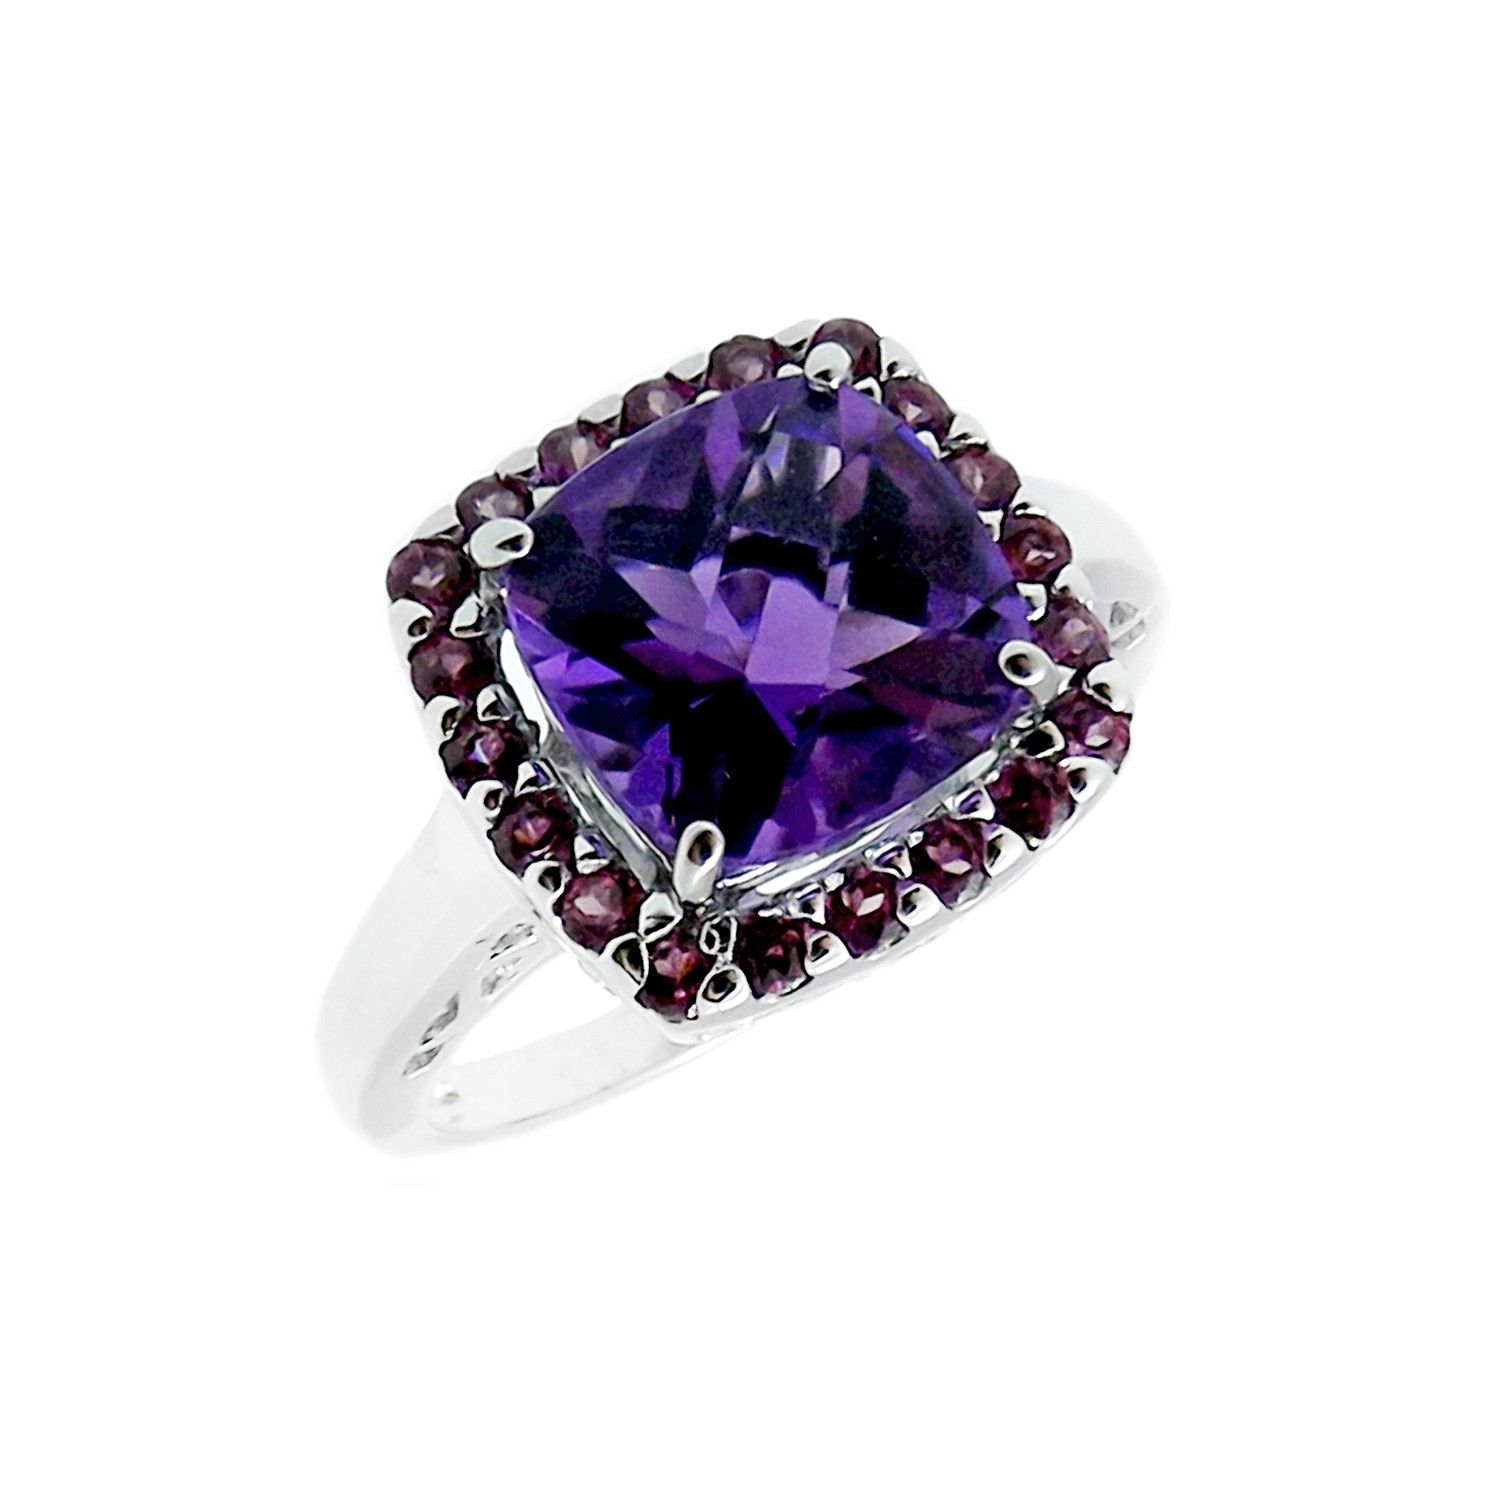 range crystalize with purple these swarovski stunning fantastic offer couture crystals the inspired news color colour from use be and ultra violet tones of a gemstone your